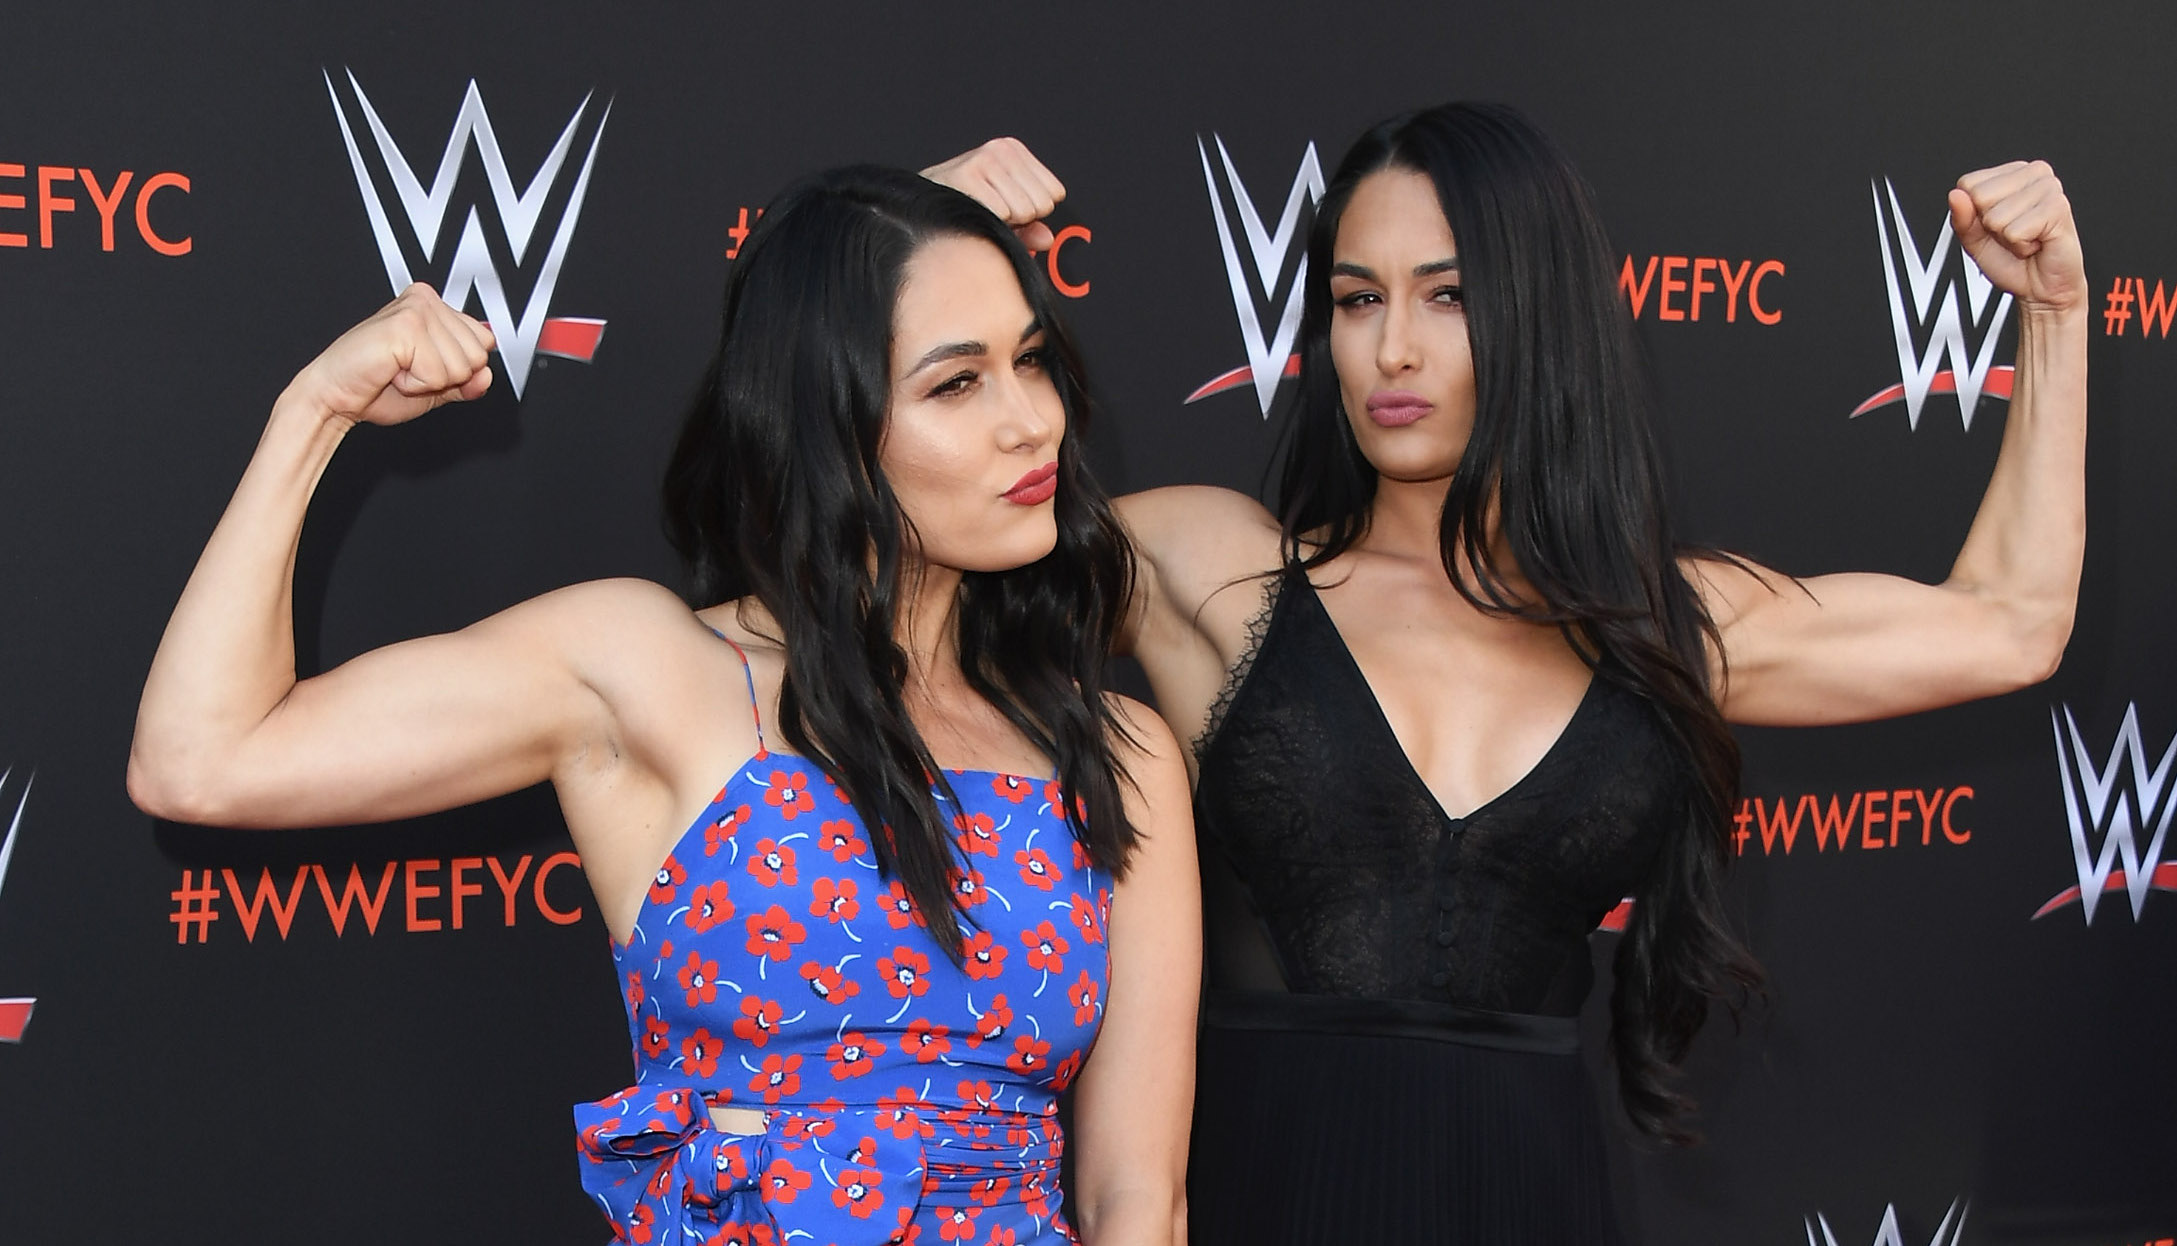 Sexy Fotos The Bella Twins naked photo 2017